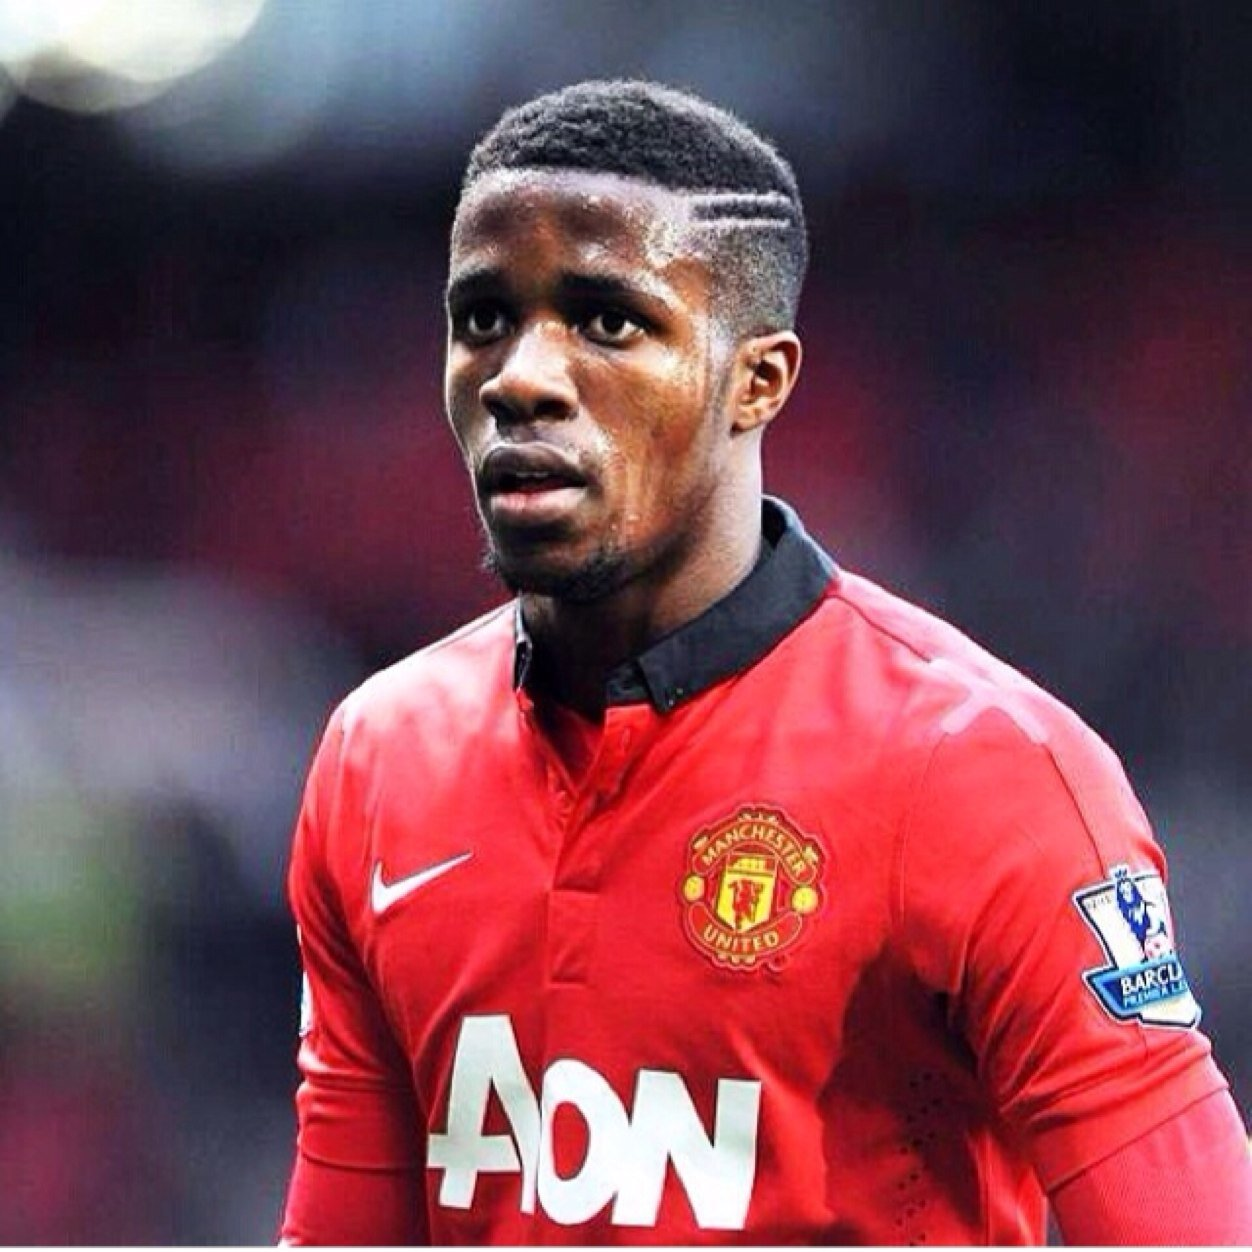 Manchester United winger Wilfried Zaha undergoing medical at Cardiff ahead of loan move [MEN]